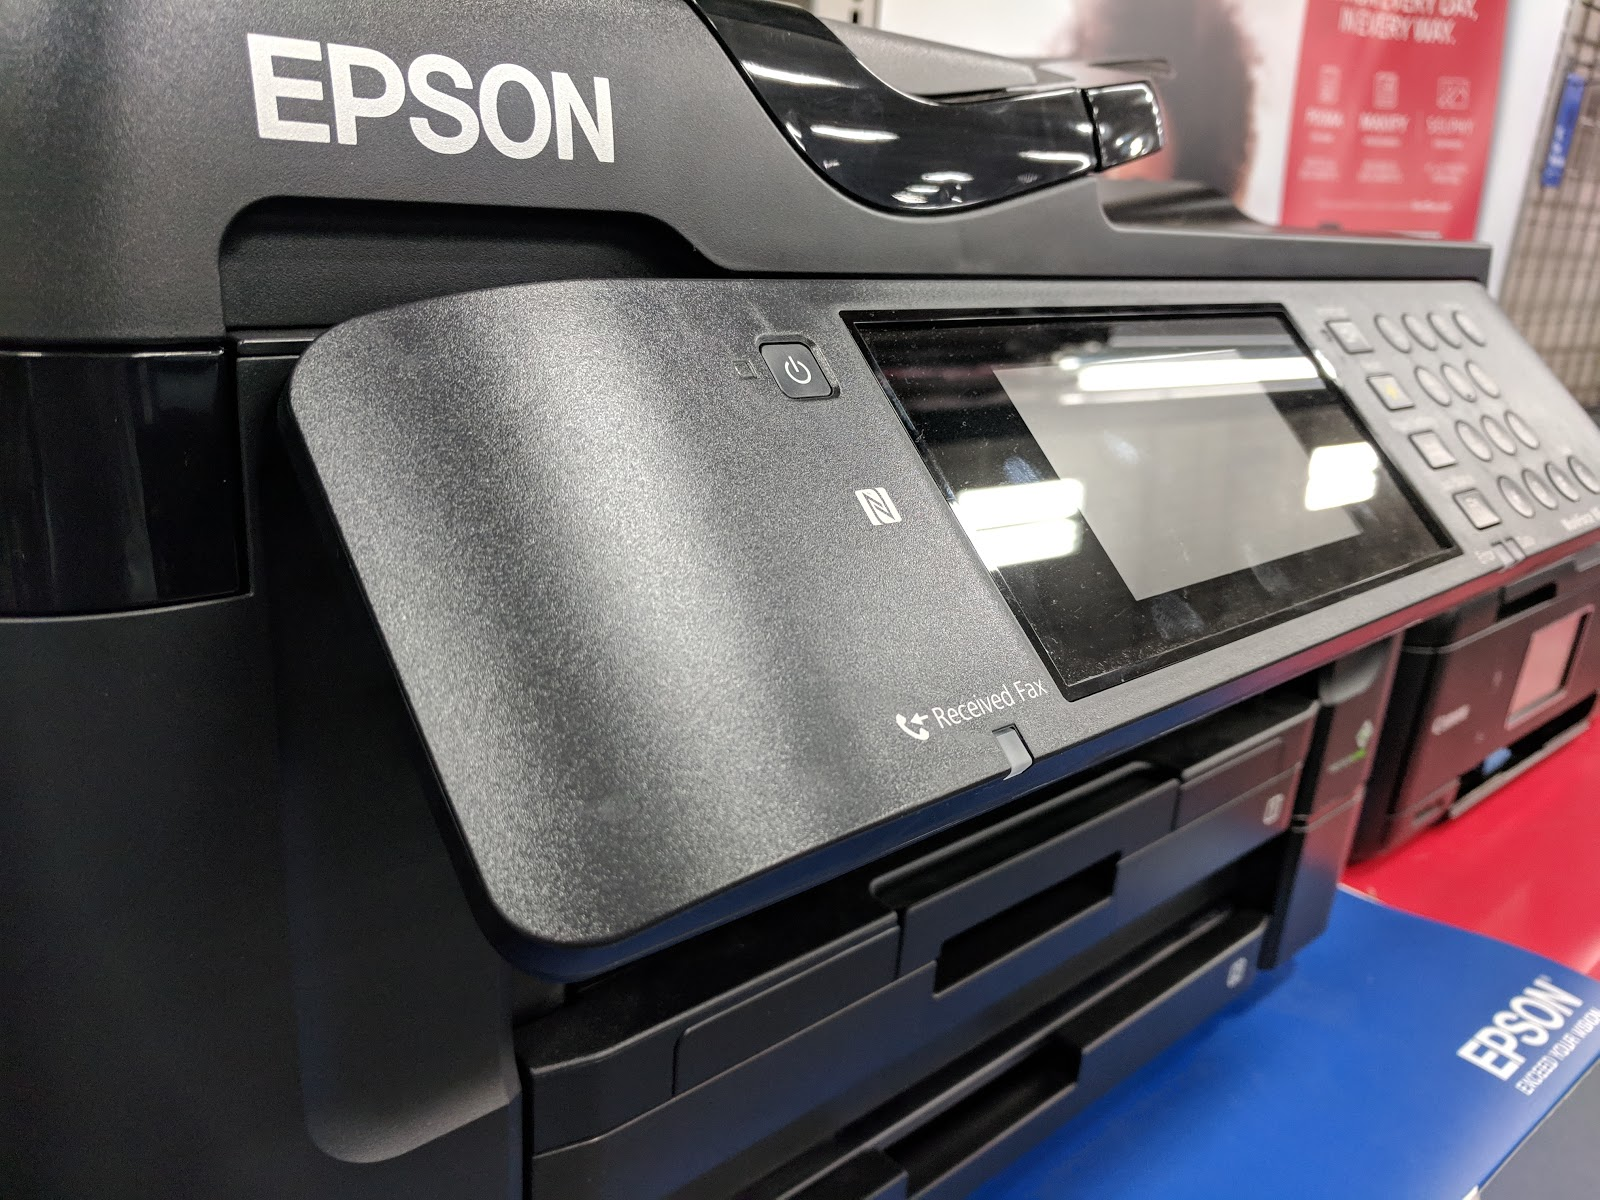 telecharger adjustment program epson bx300f